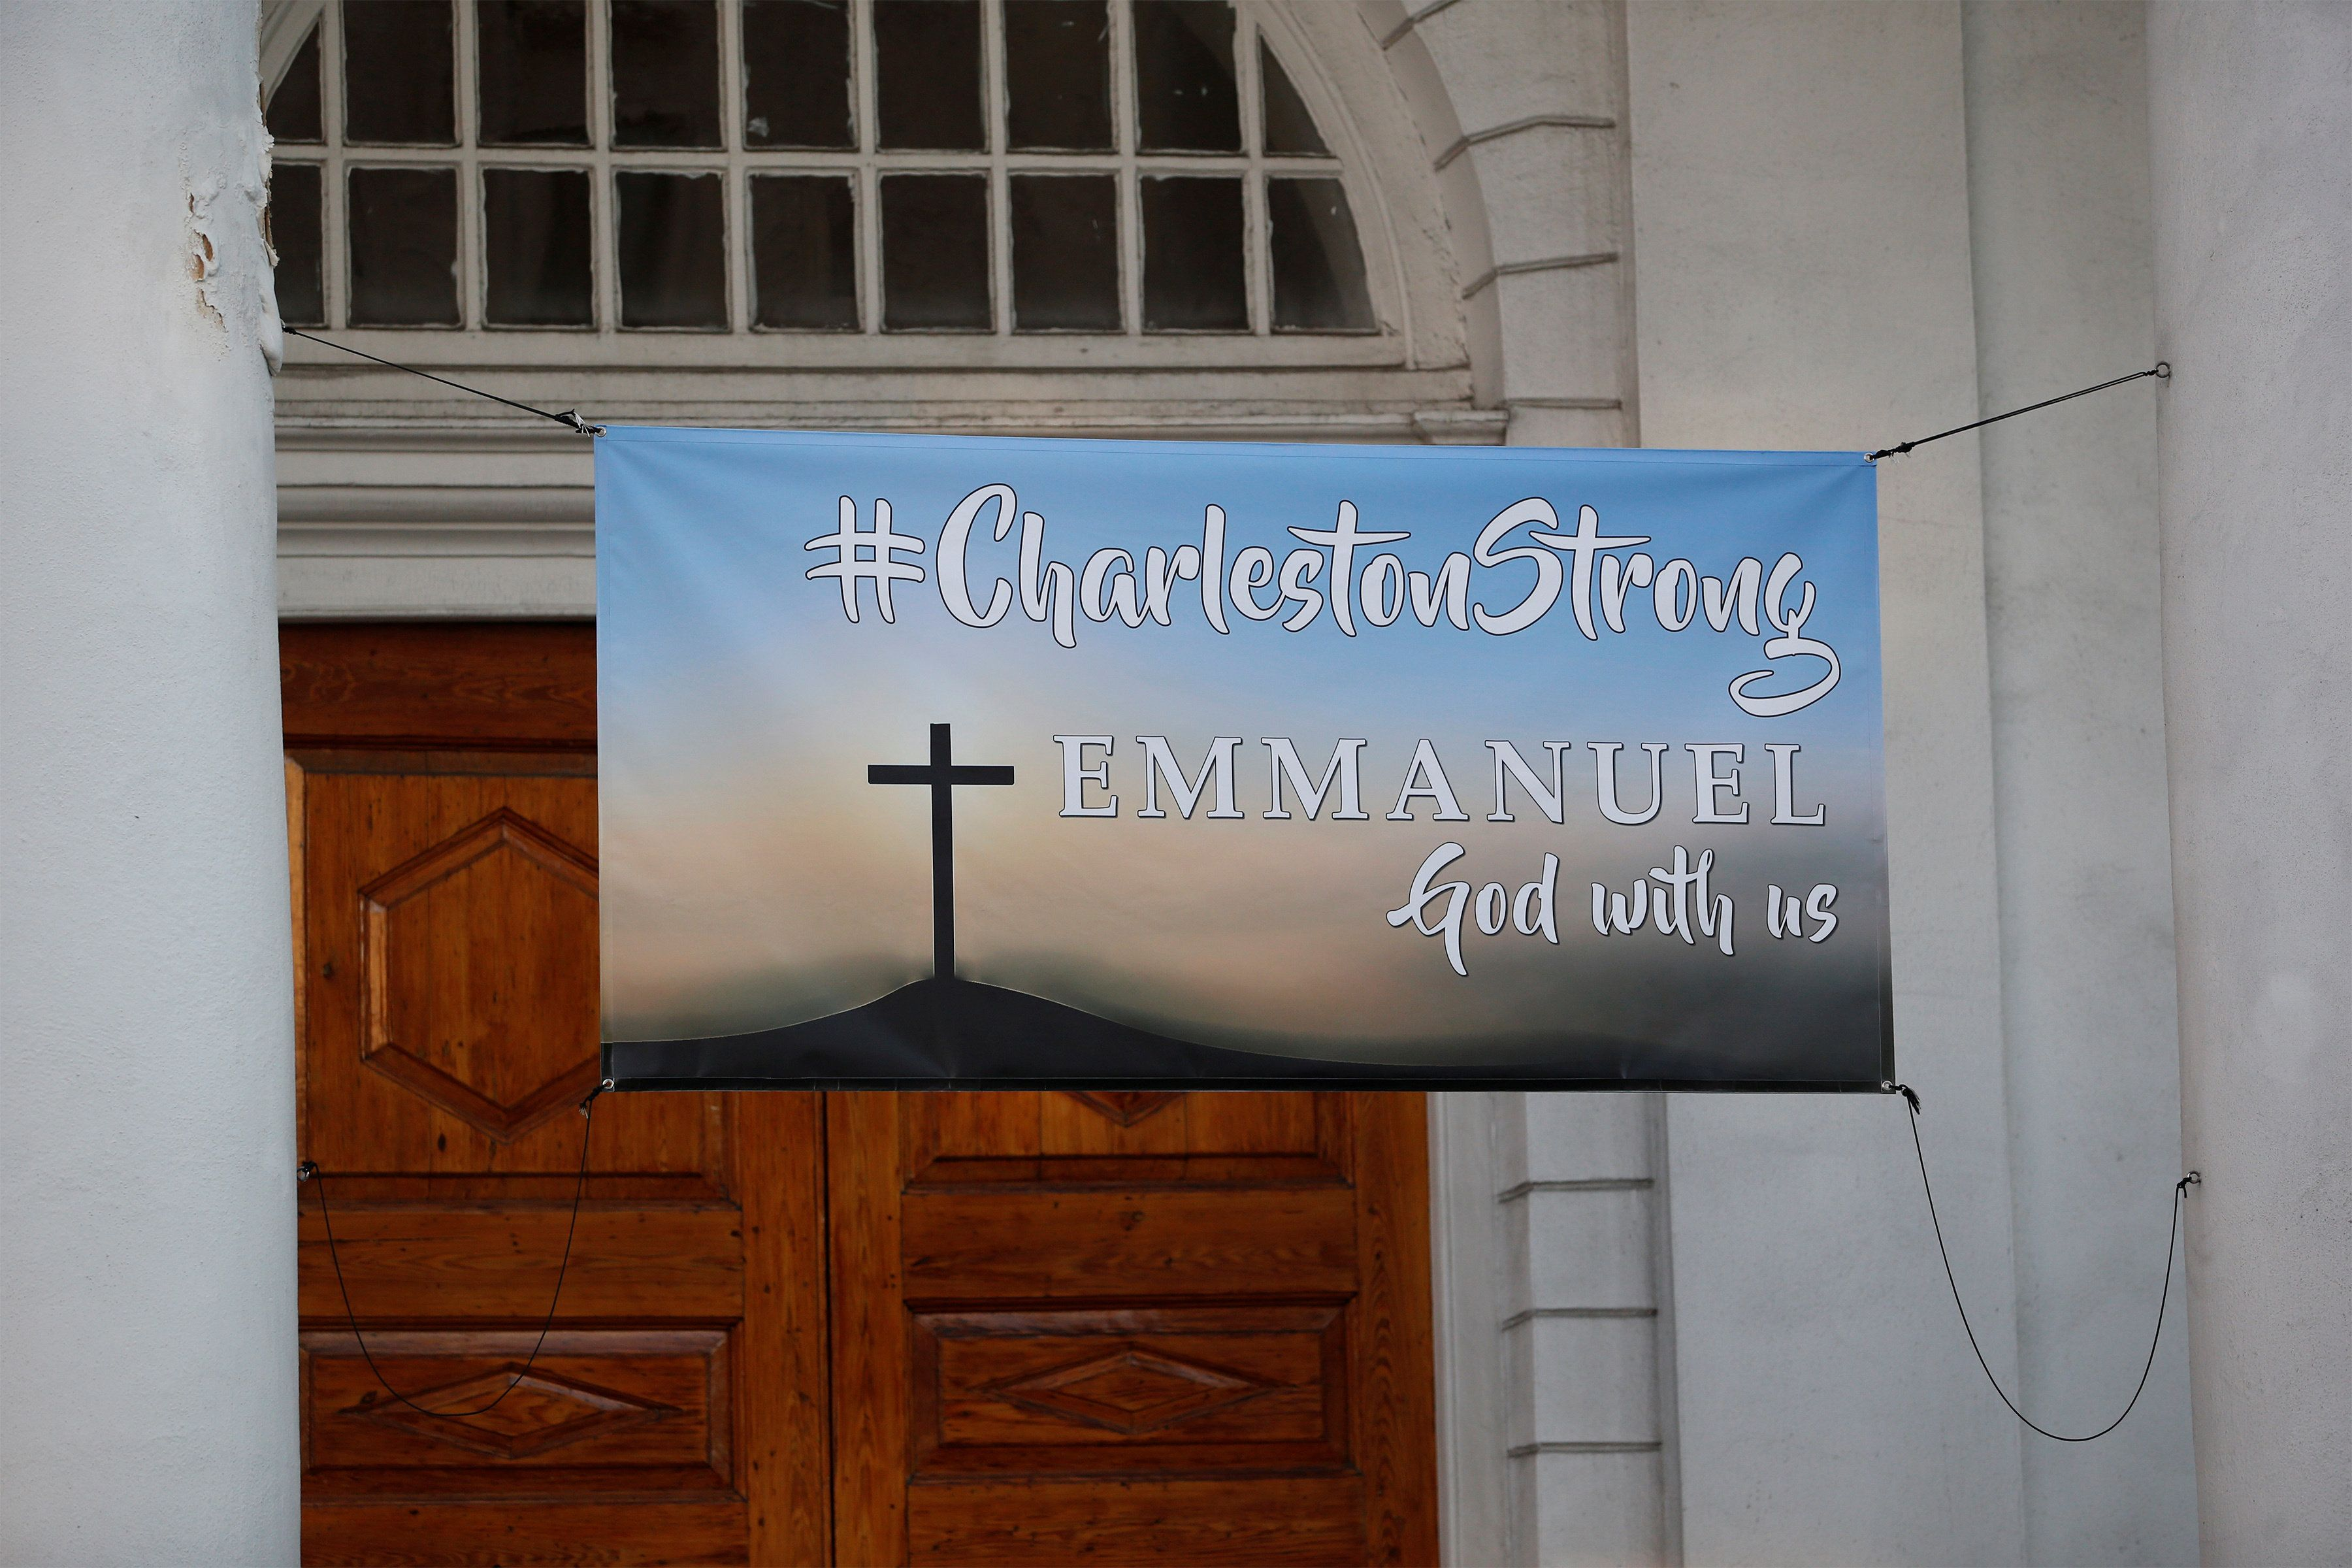 A Charleston Strong banner hangs from a church across from the Charleston Federal Courthouse during the federal trial of Dylann Roof who was found guilty of 33 counts including hate crimes in Charleston, South Carolina December 15, 2016. REUTERS/Randall Hill